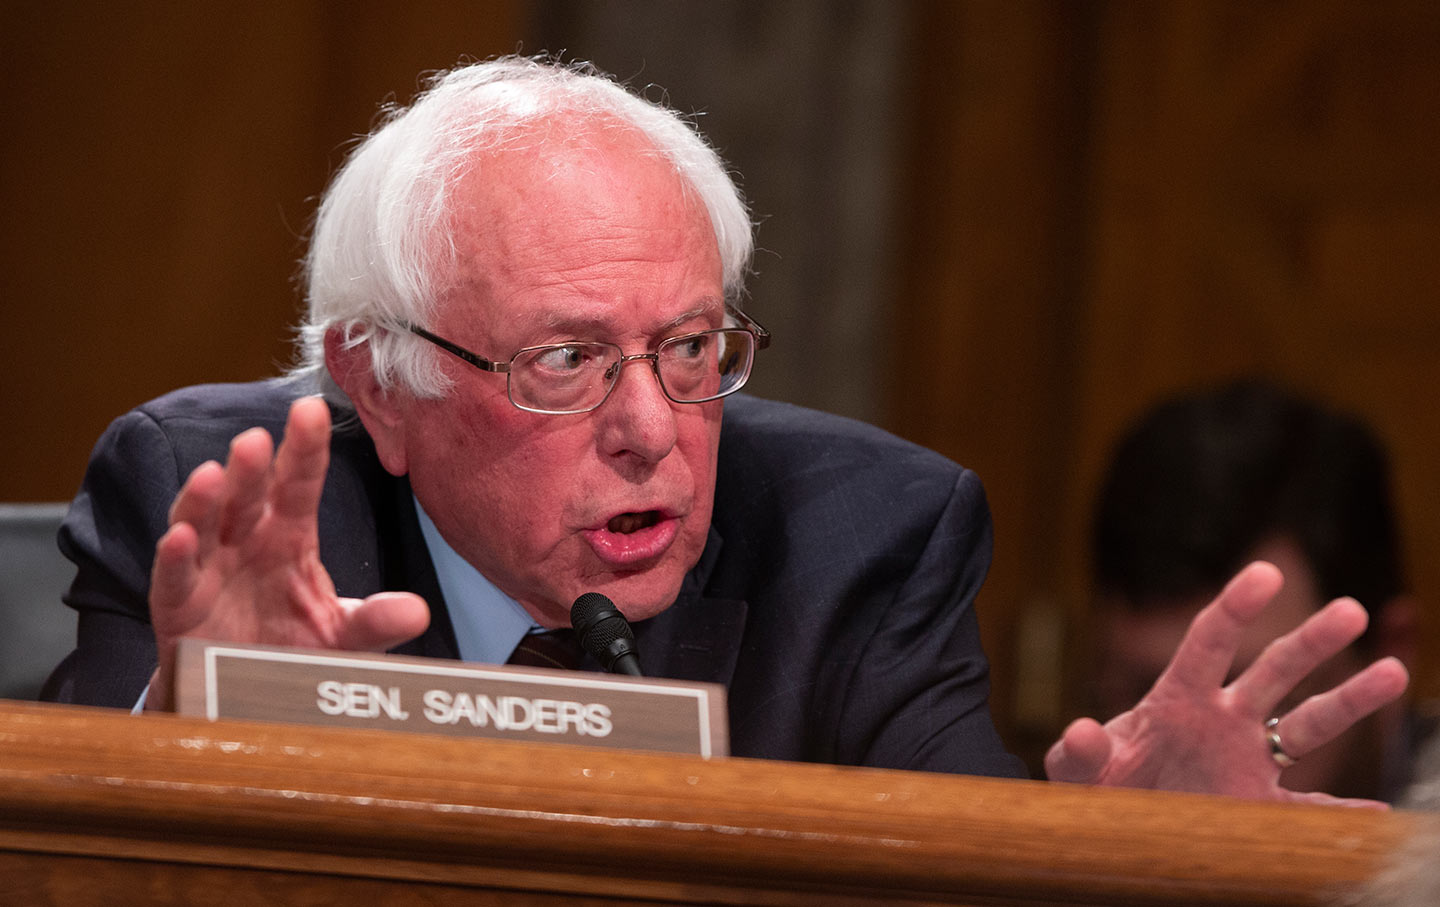 Bernie Sanders Getting the Senate to Check and Balance